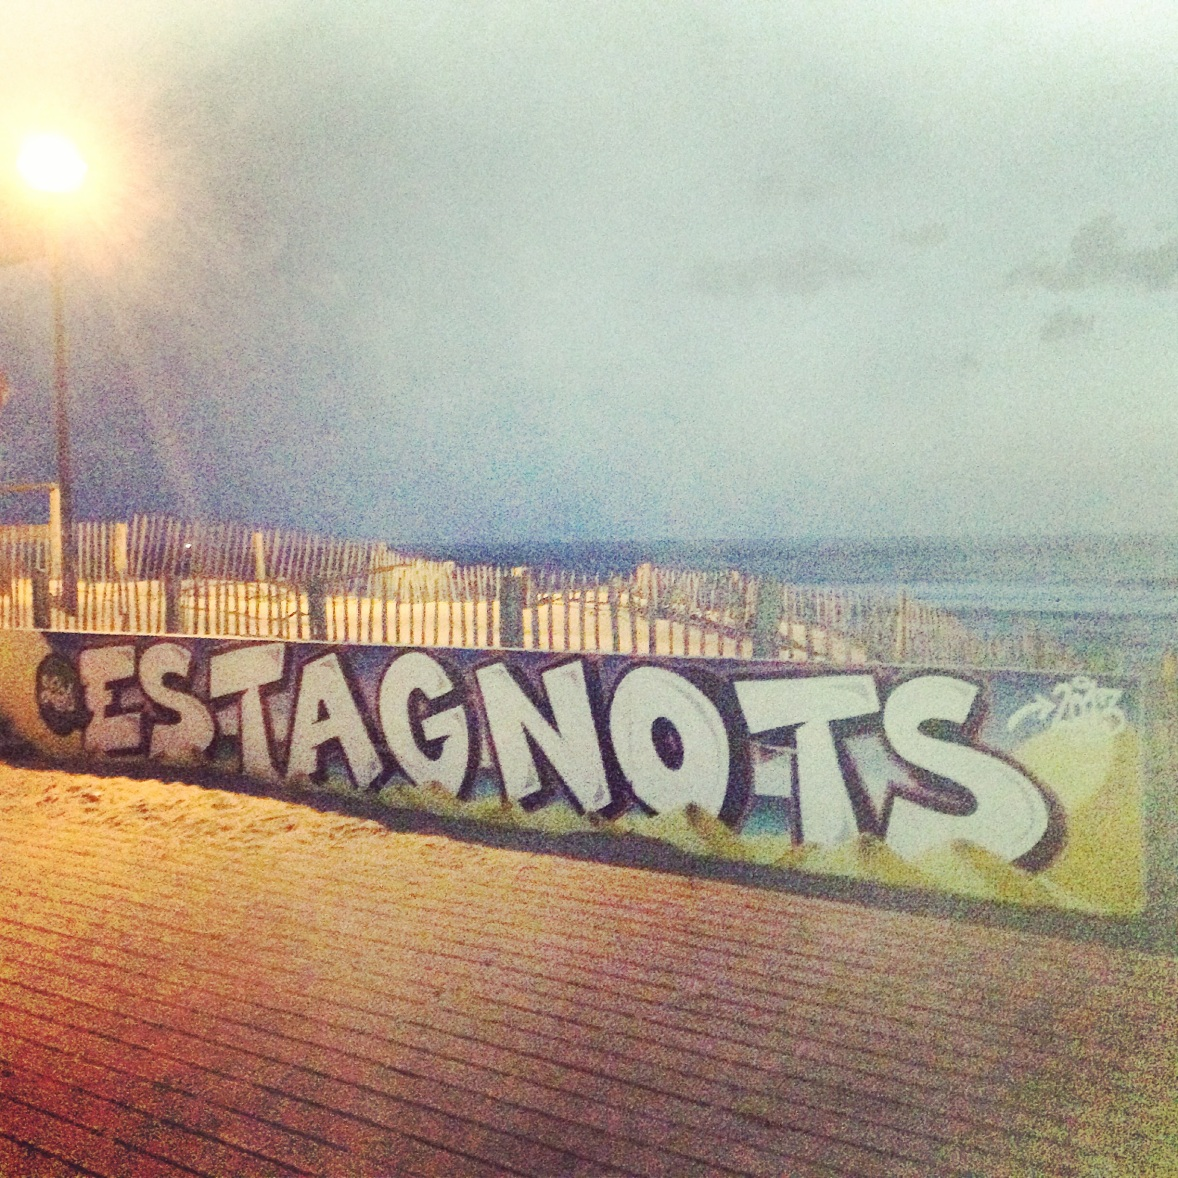 After my last night at Hossegor, we visited this famous surf spot, Les Estagnots and met a surfer from Australia on a camping car and others from all over the world.